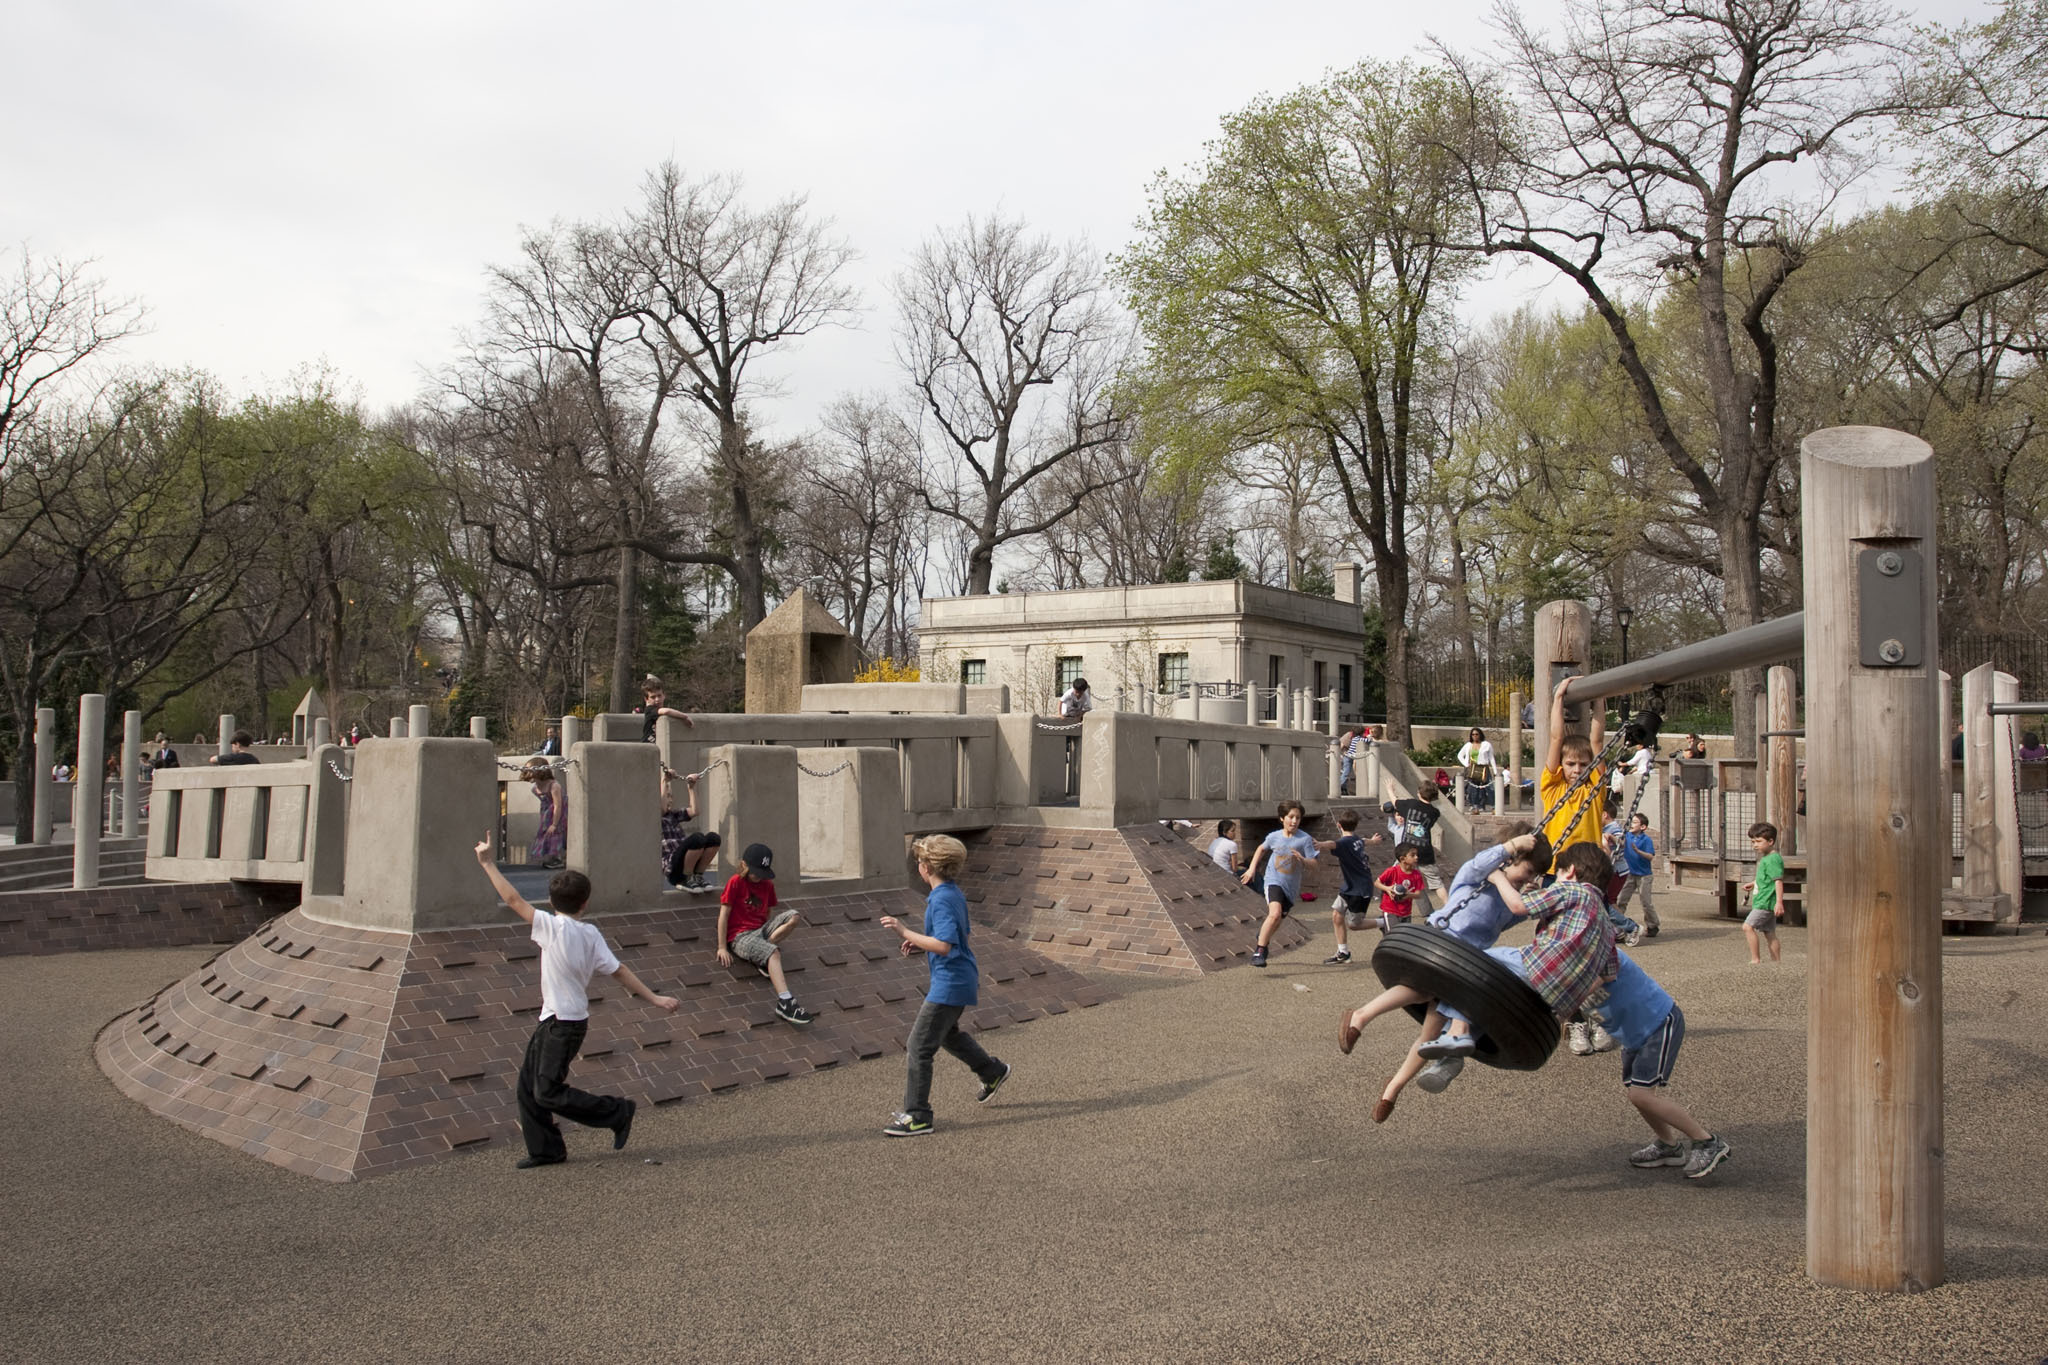 Walk like an Egyptian at the Ancient Playground